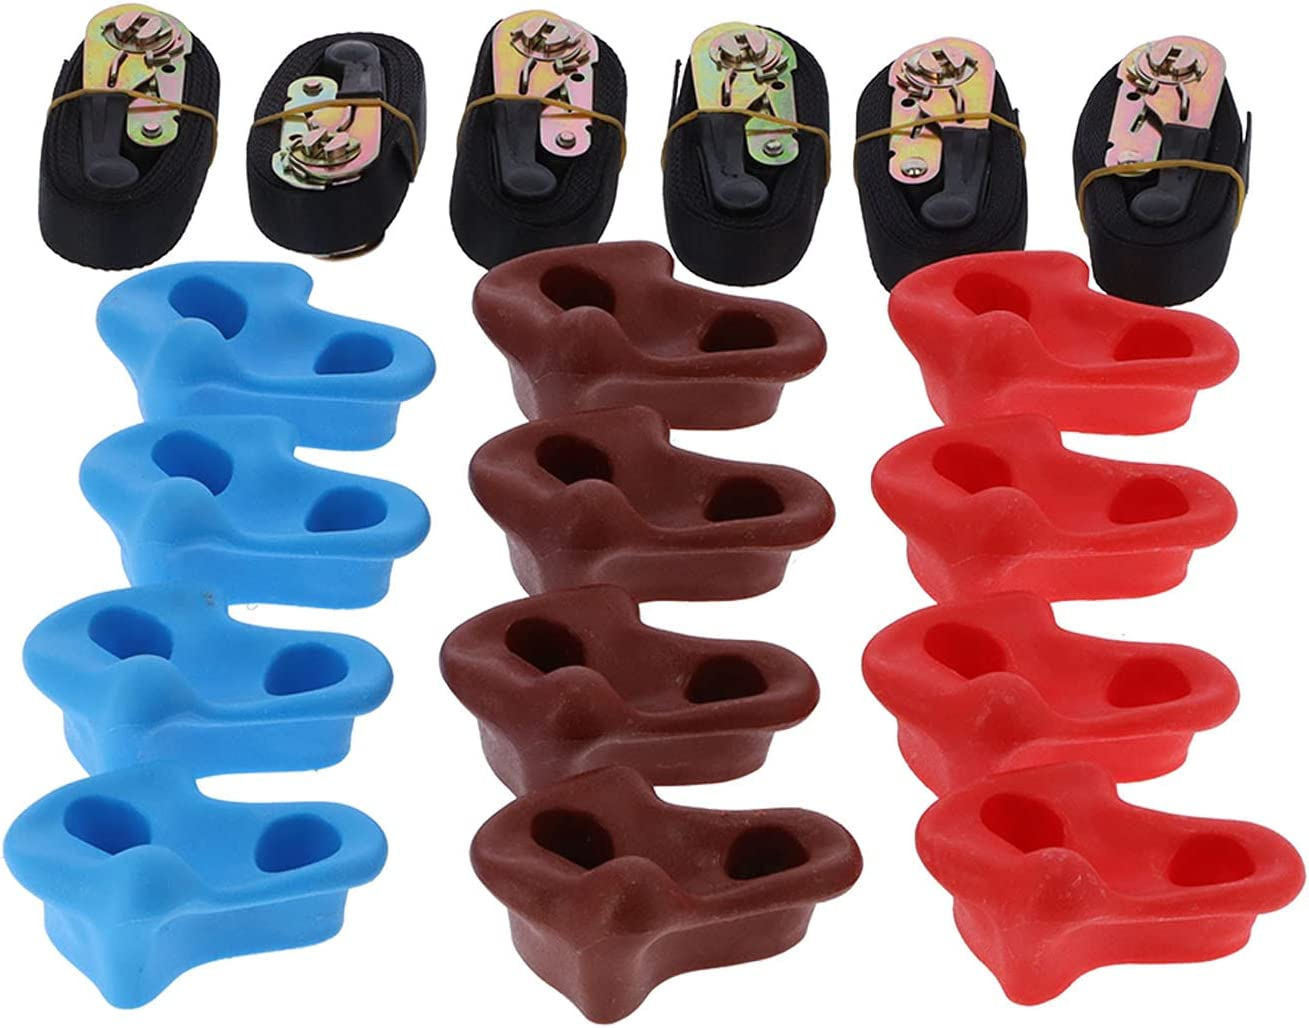 Estink Kids Tree Free shipping anywhere in the nation Ranking TOP10 Climber Lightweight Compact Climbing Hold Rock